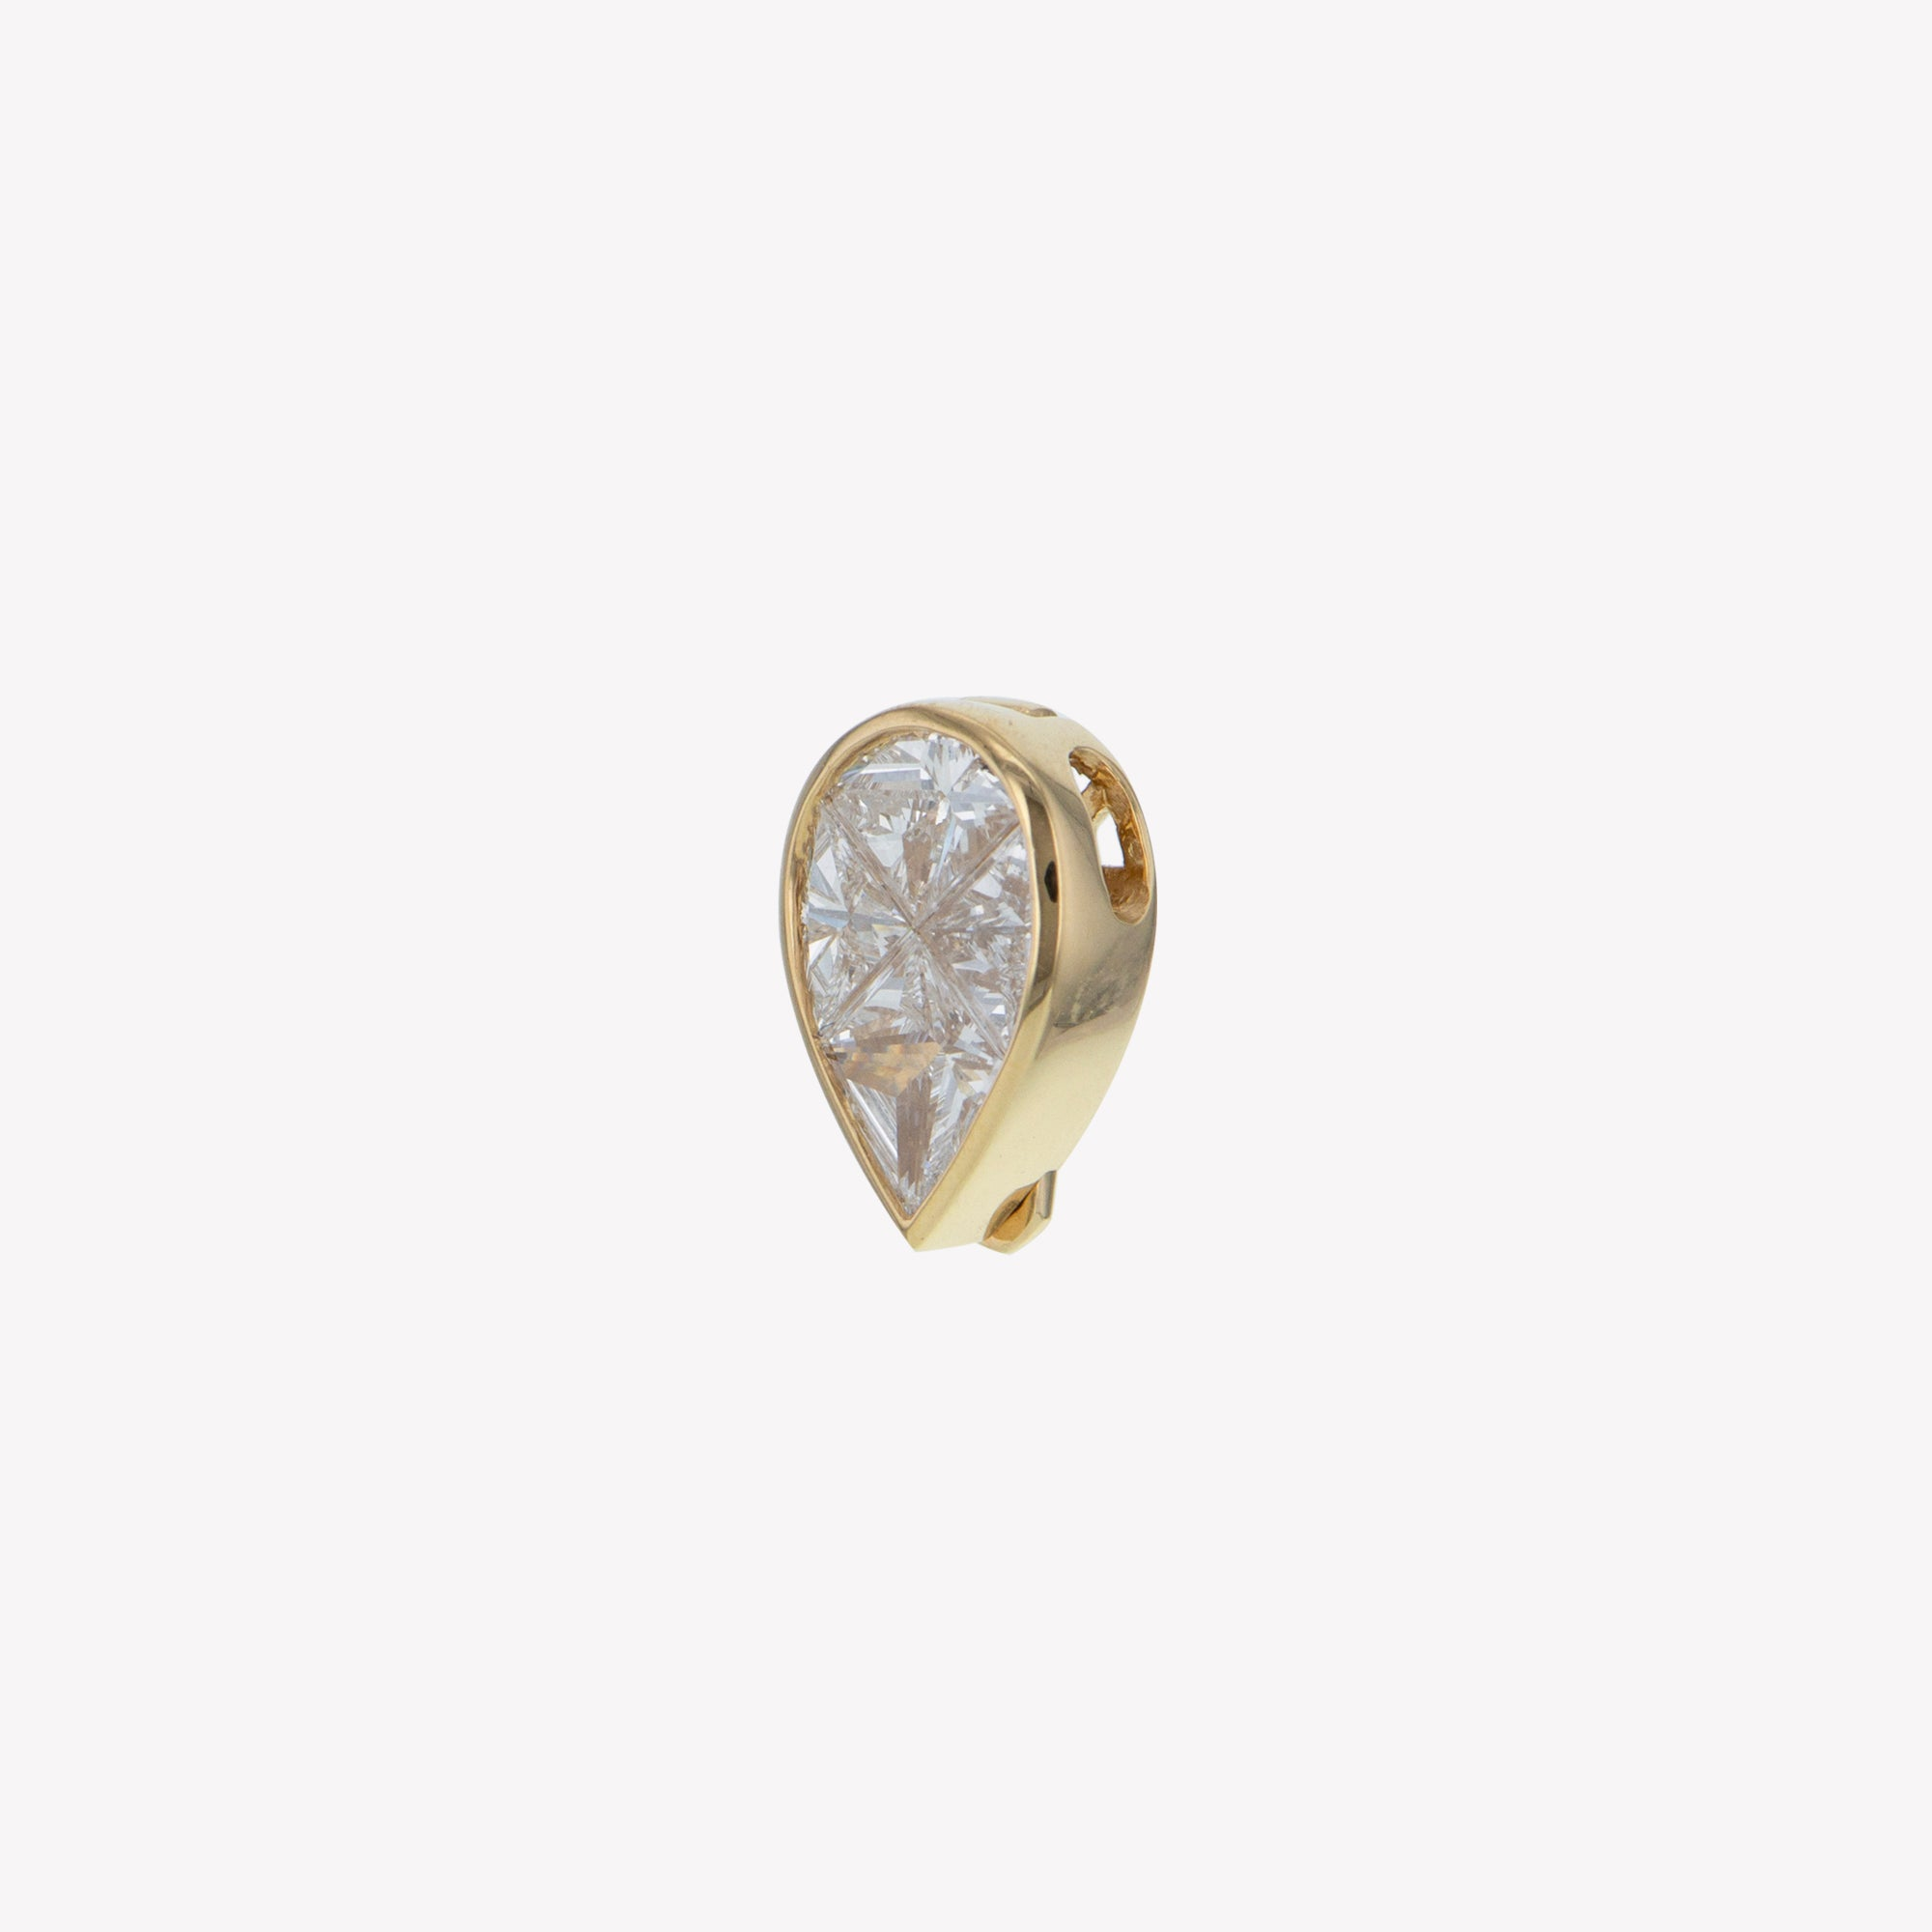 Detachable Yellow Gold Pear Head with Octa Band